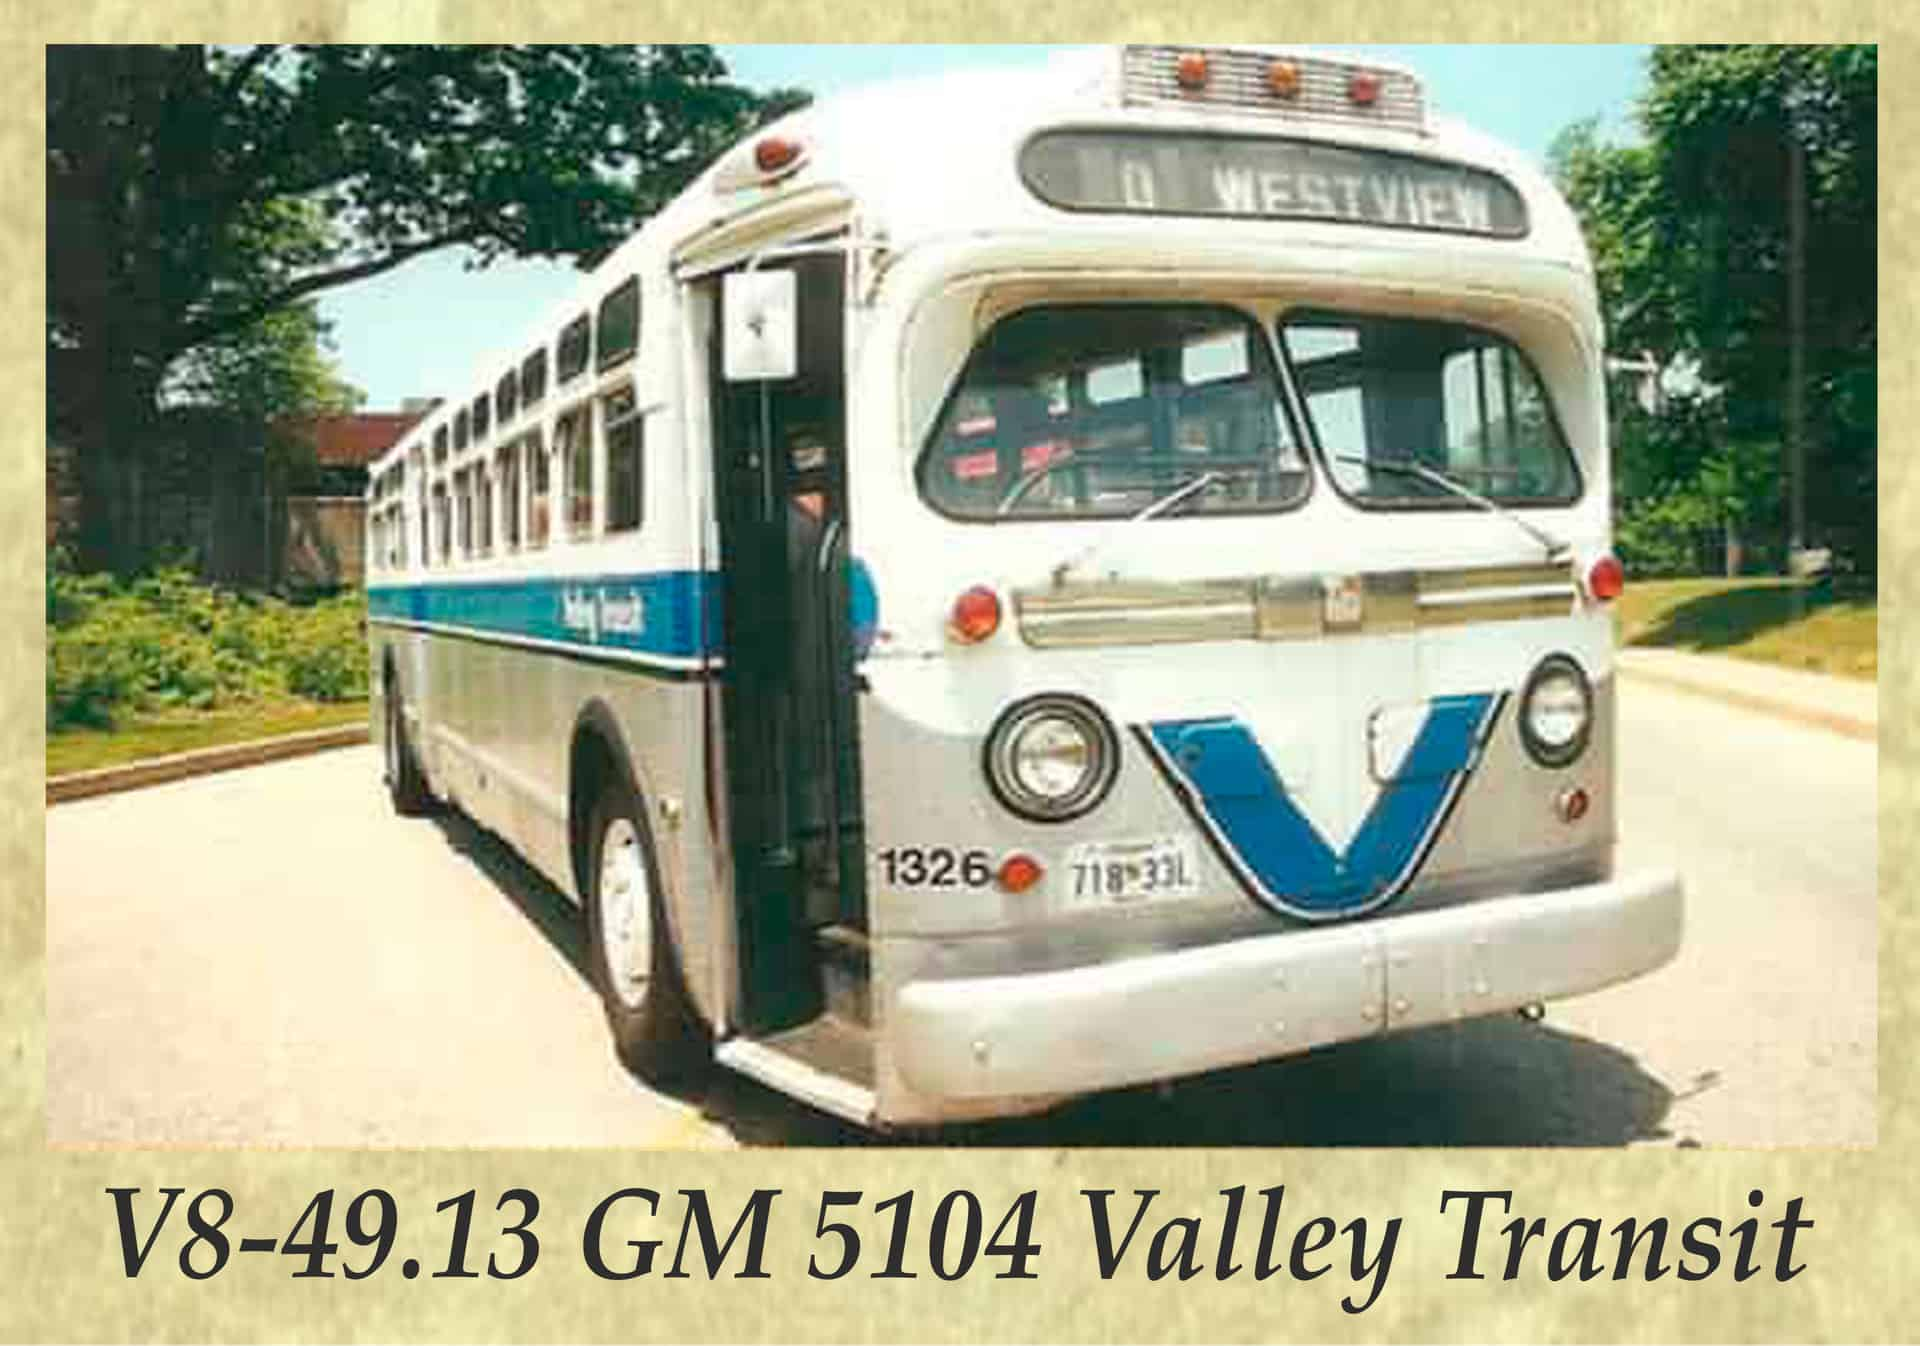 V8-49.13 GM 5104 Valley Transit